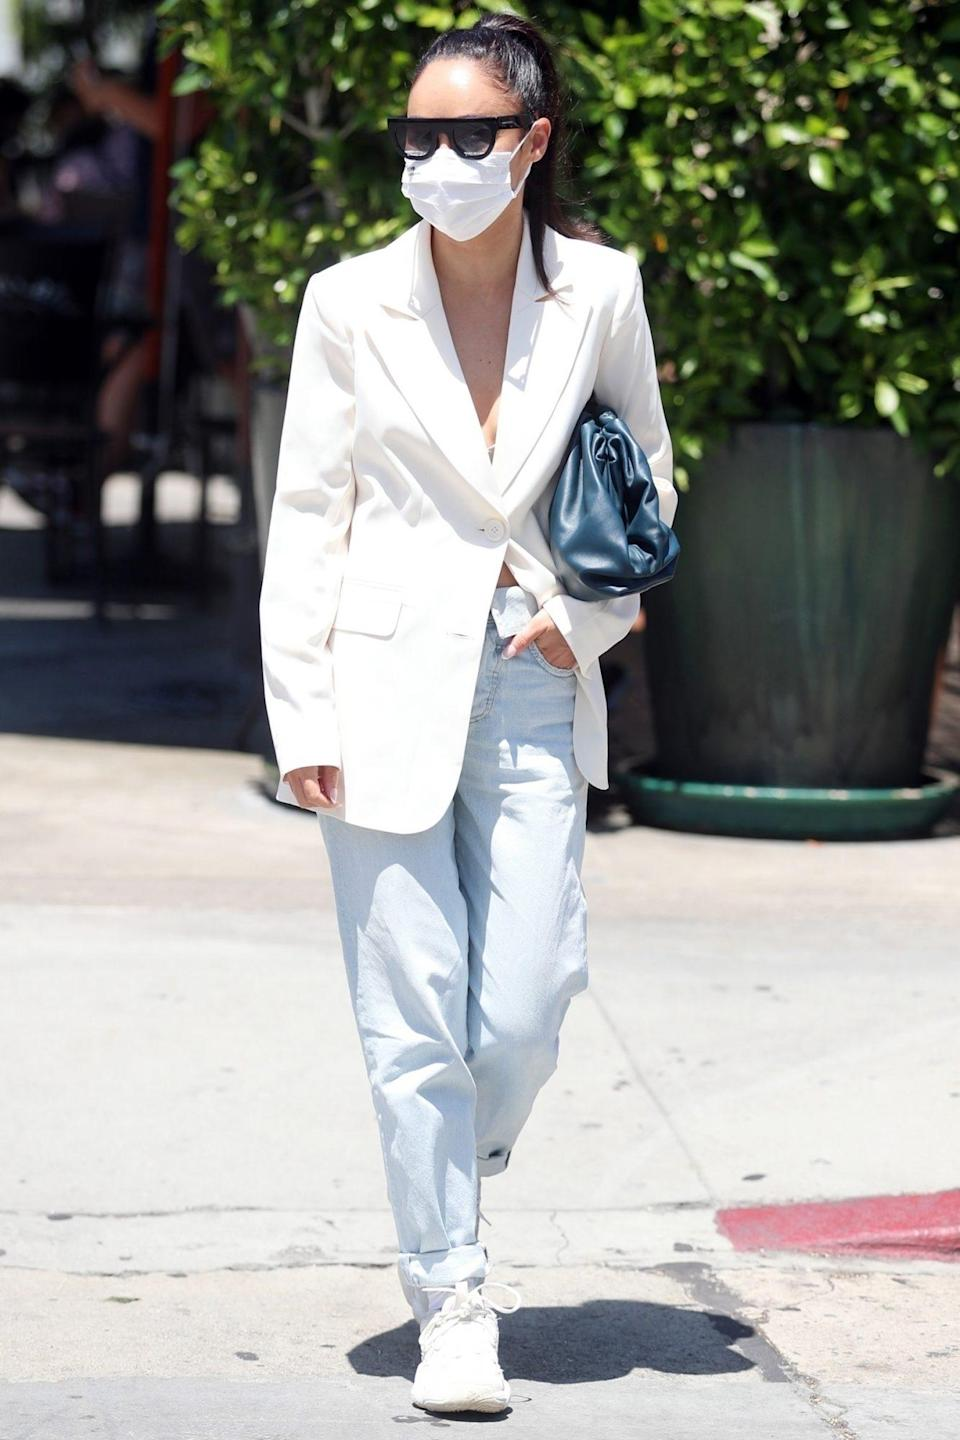 <p>Cara Santana dons an all-white outfit to meet a girlfriend at Urth Caffé in L.A. on Tuesday.</p>